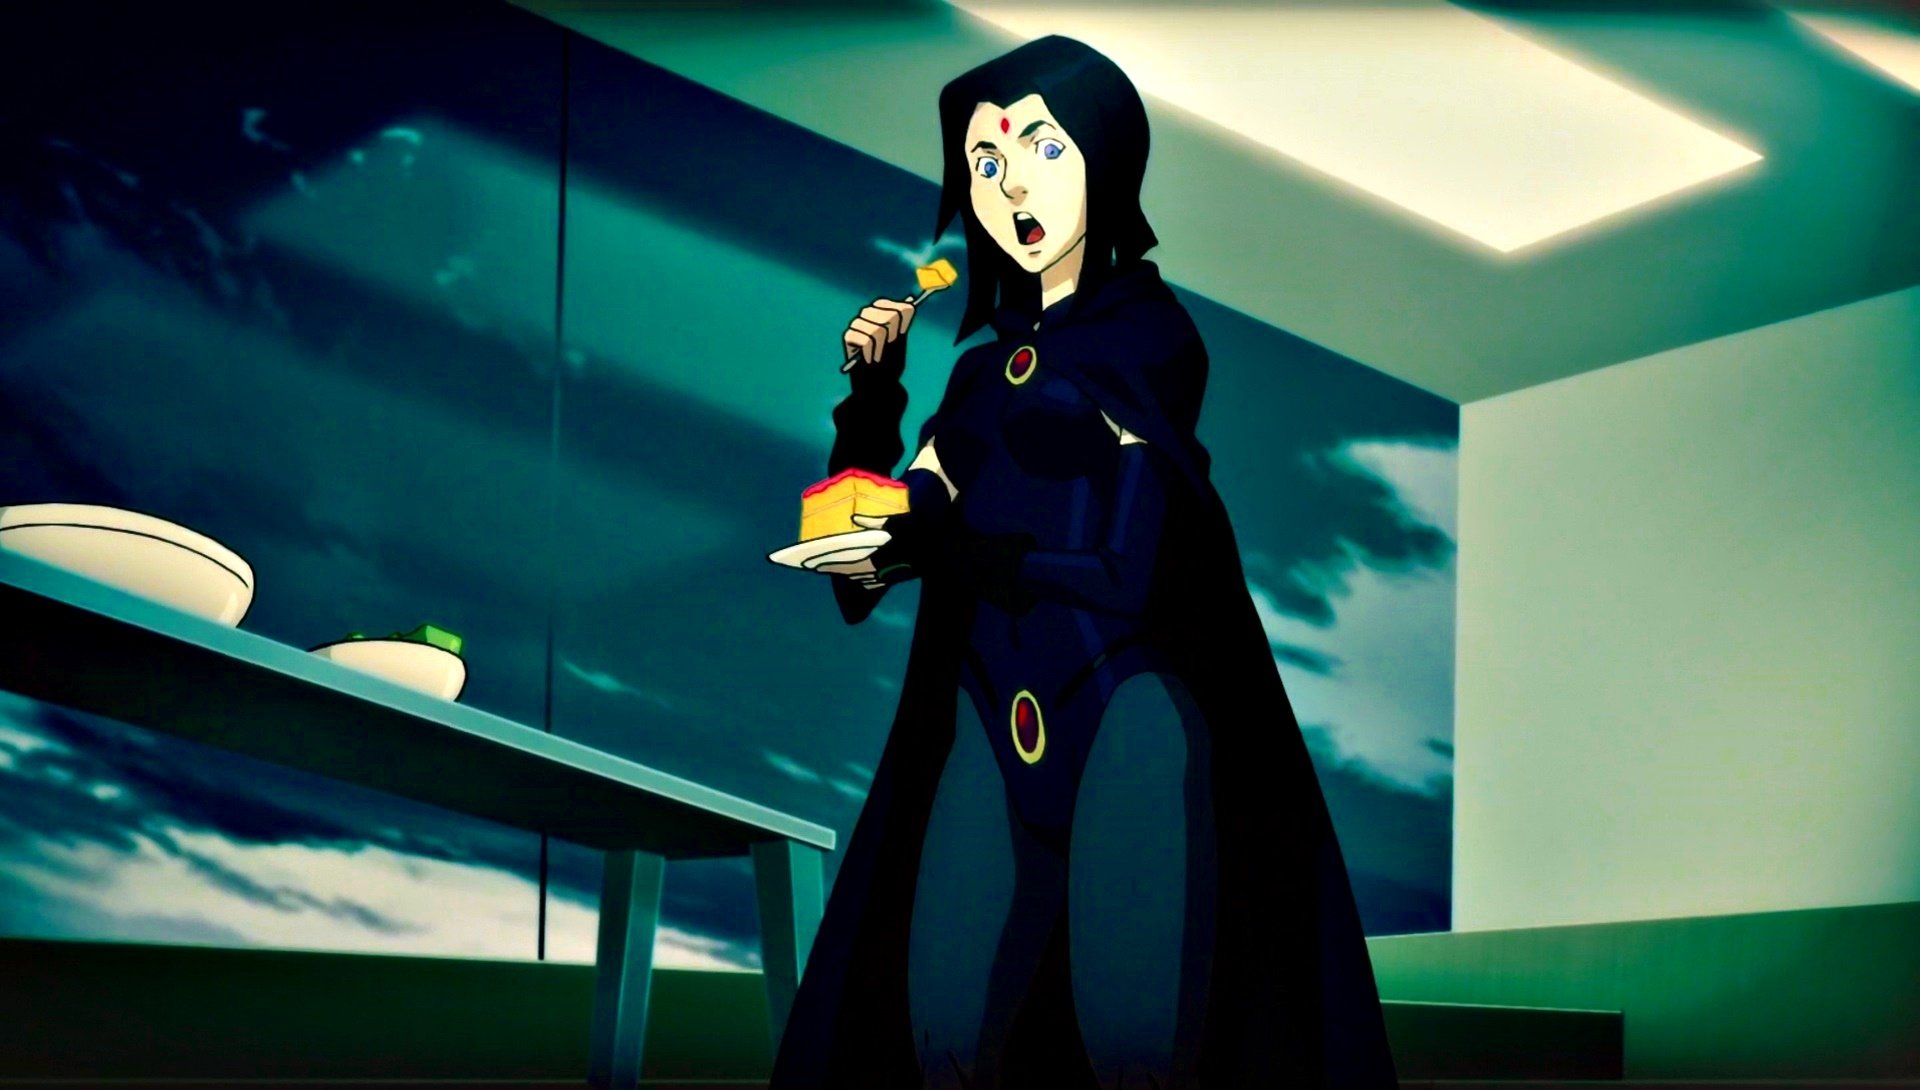 Teen Titans - Raven Hd Wallpaper  Background Image -6990